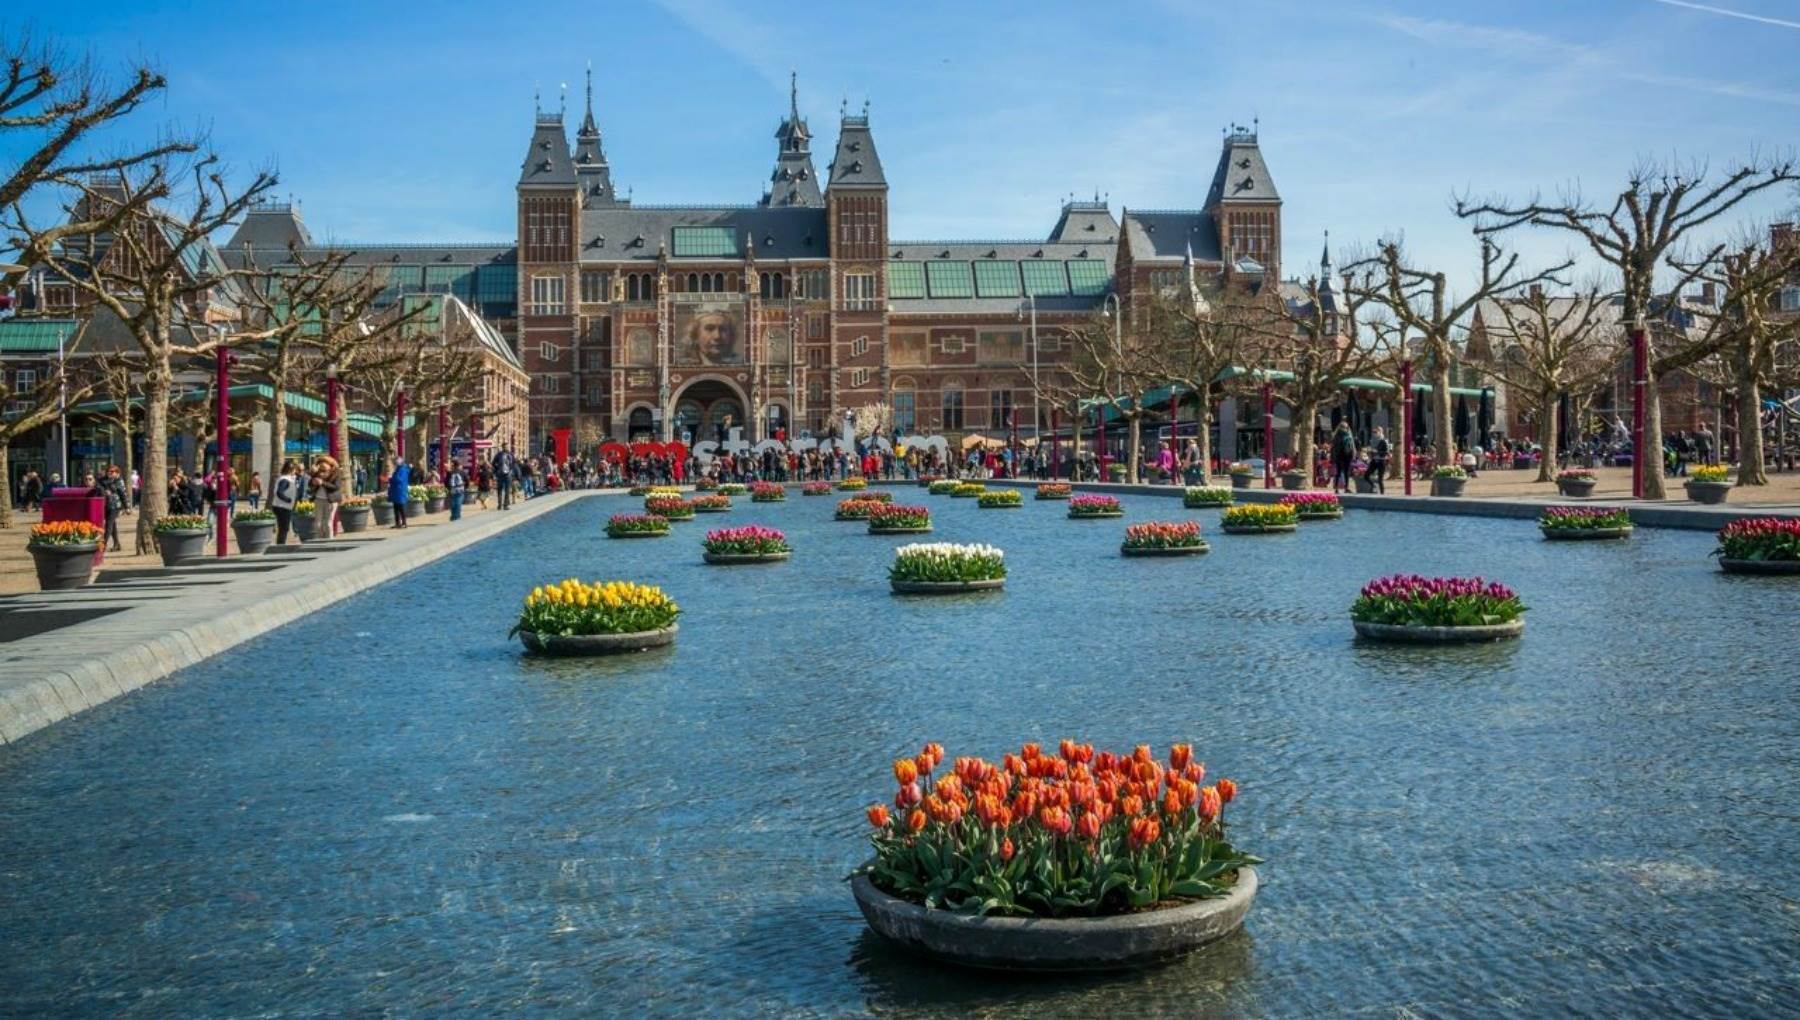 Amsterdam travel guide for first-time visitors - Best Places to Visit in Europe - planningforeurope.com (1)